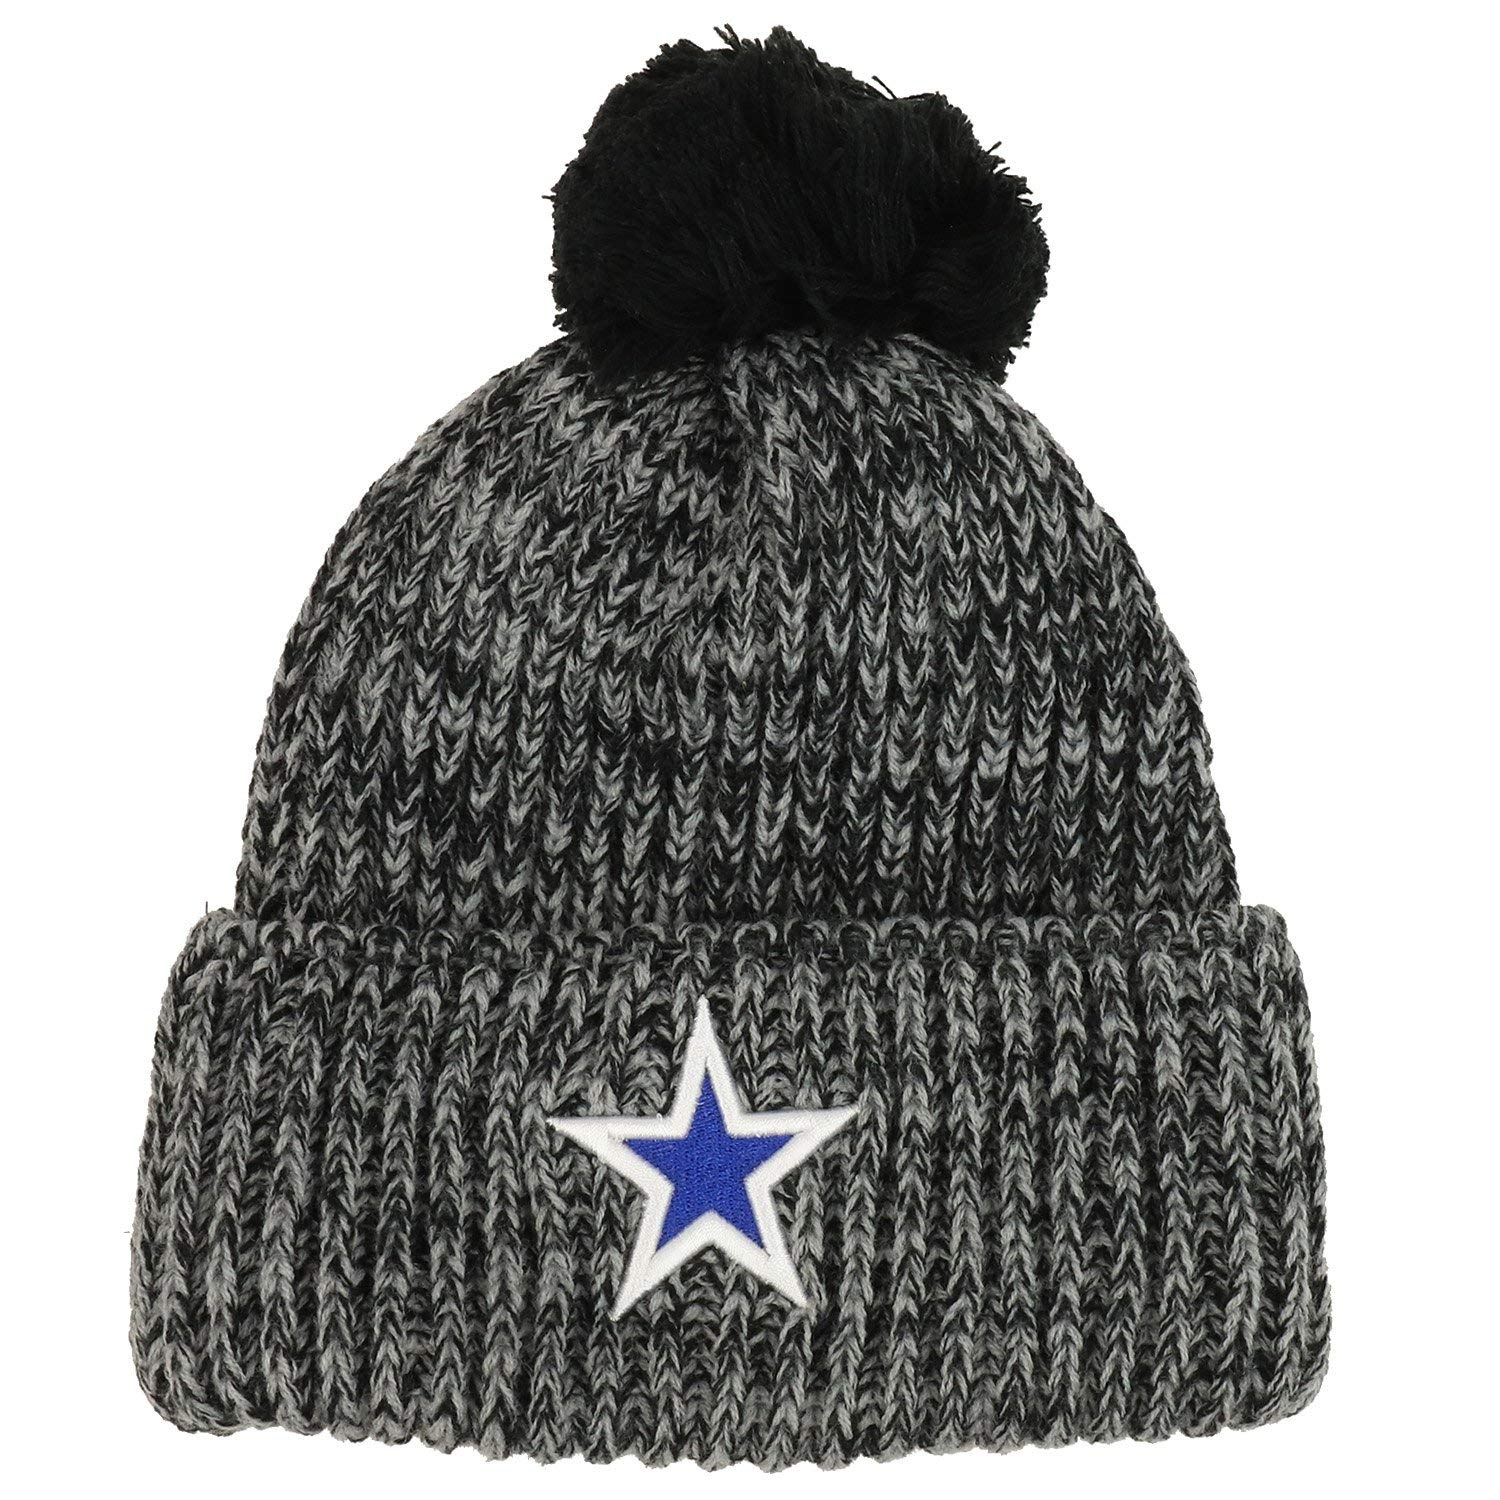 58bf0c97222fed Get Quotations · Trendy Apparel Shop Dallas Lone Star Embroidered Ribbed  Knit Pom Pom Long Cuff Beanie